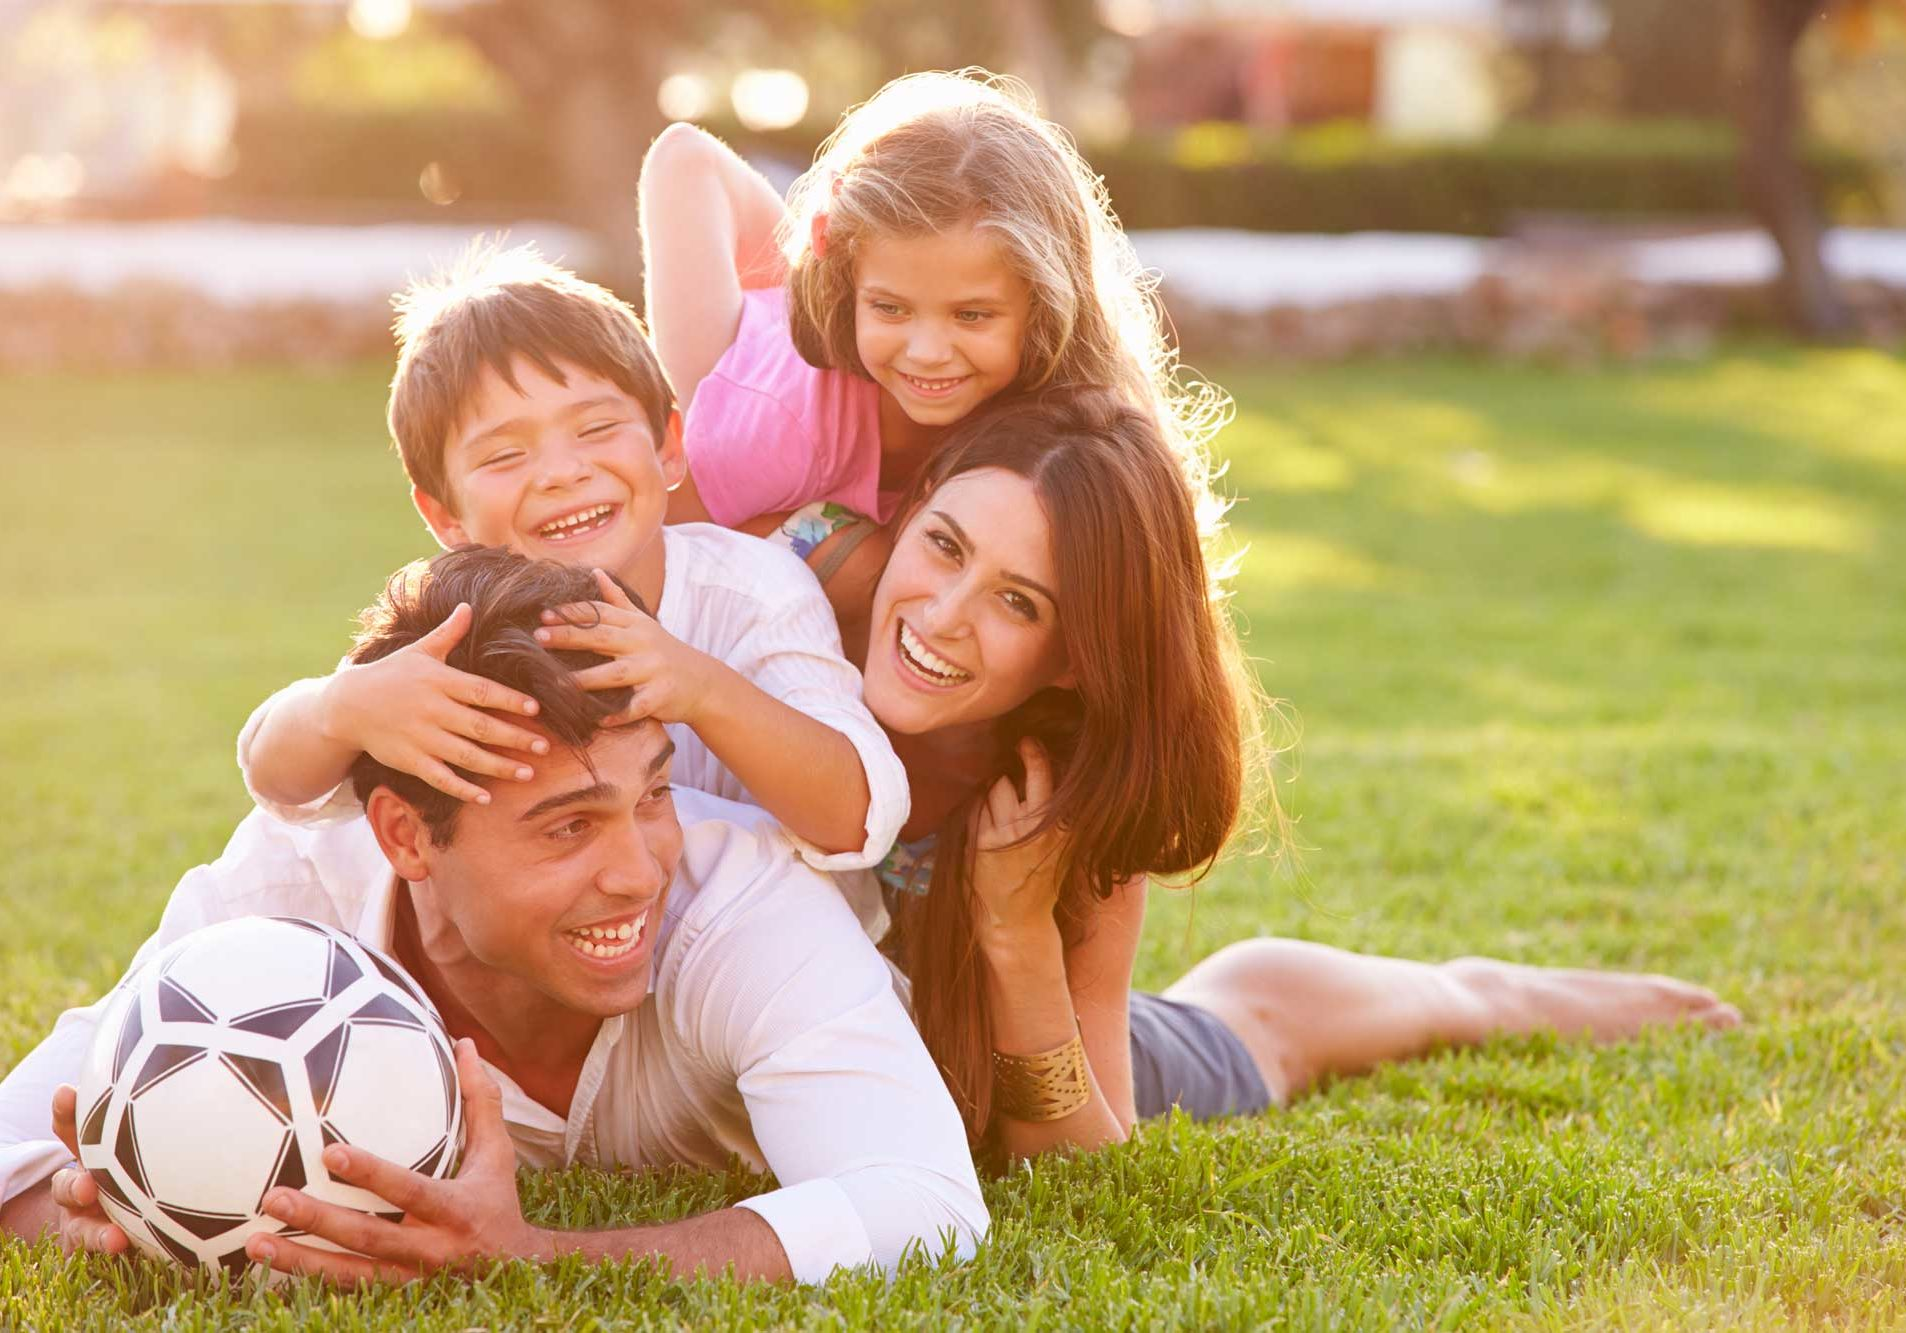 family-outdoors-1_ss_242759530